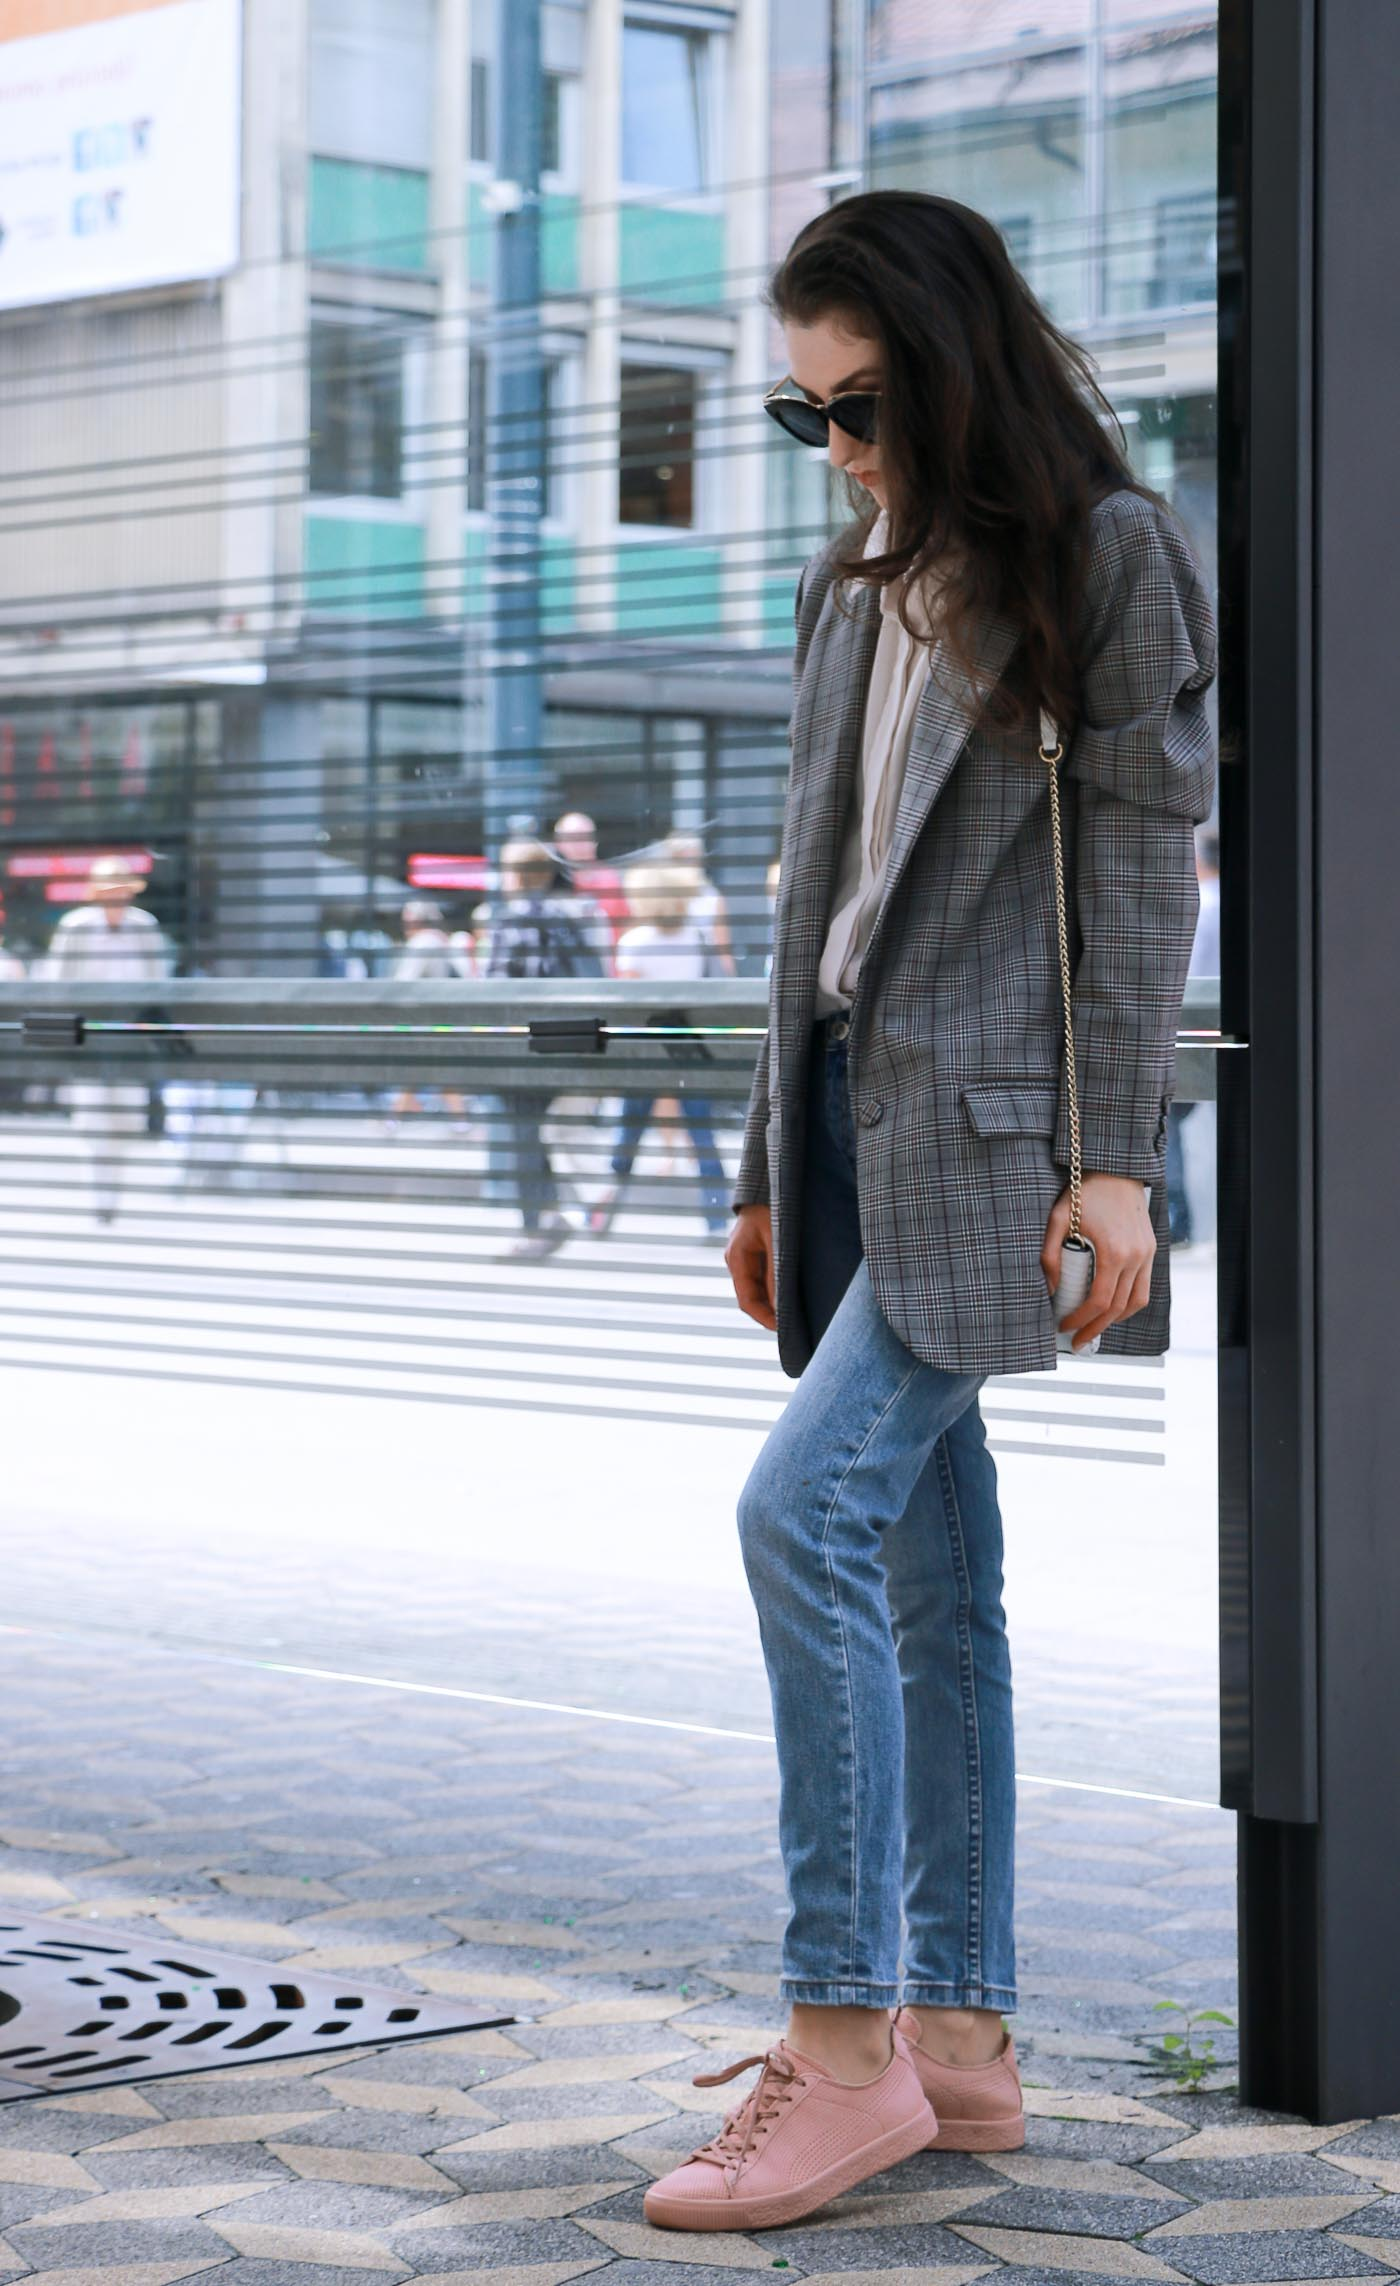 Fashion Blogger Veronika Lipar of Brunette from Wall Street wearing checked oversized boyfriend blazer and mom jeans while waiting on the bus